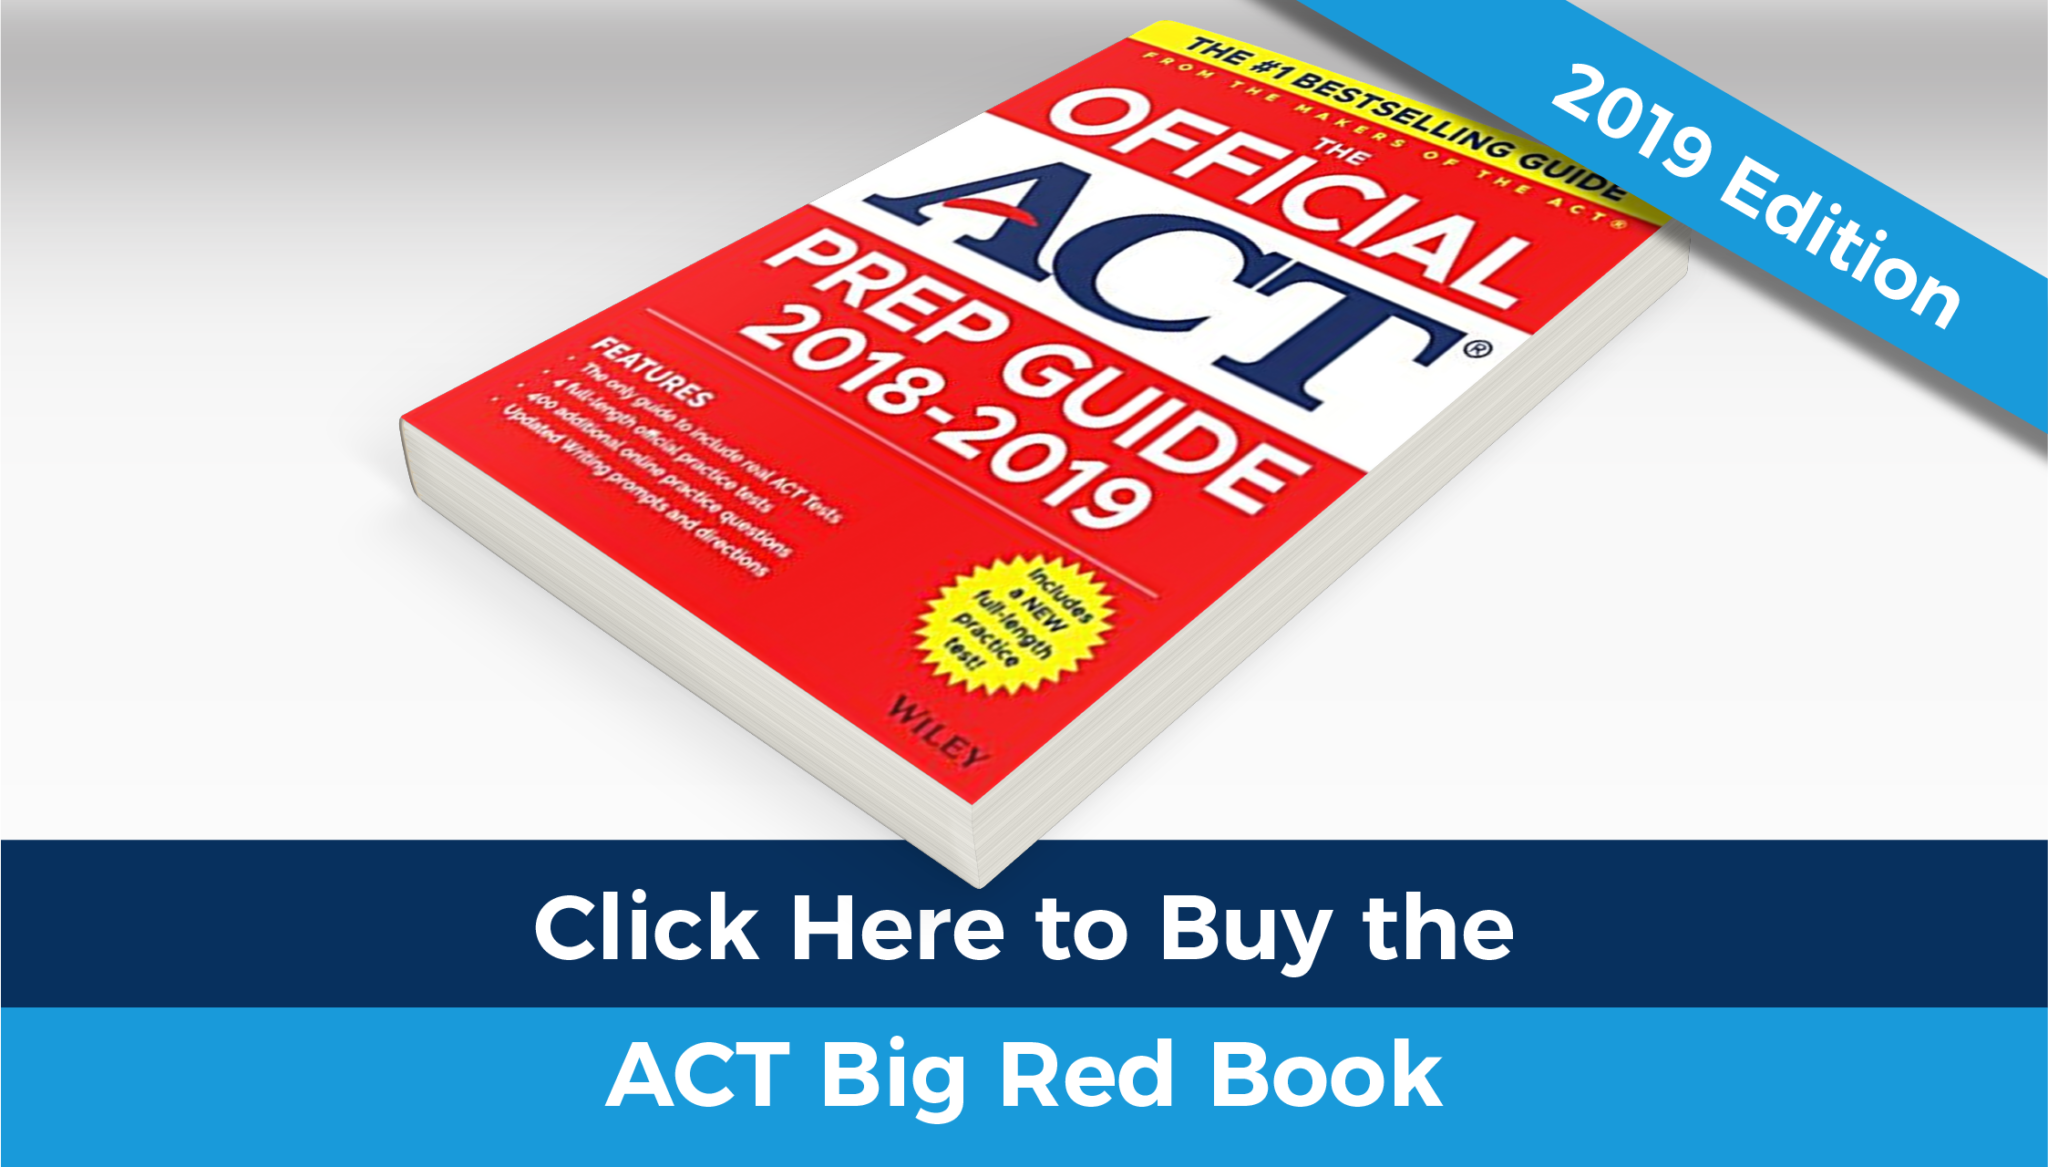 Buy the 2019 ACT Big Red Book